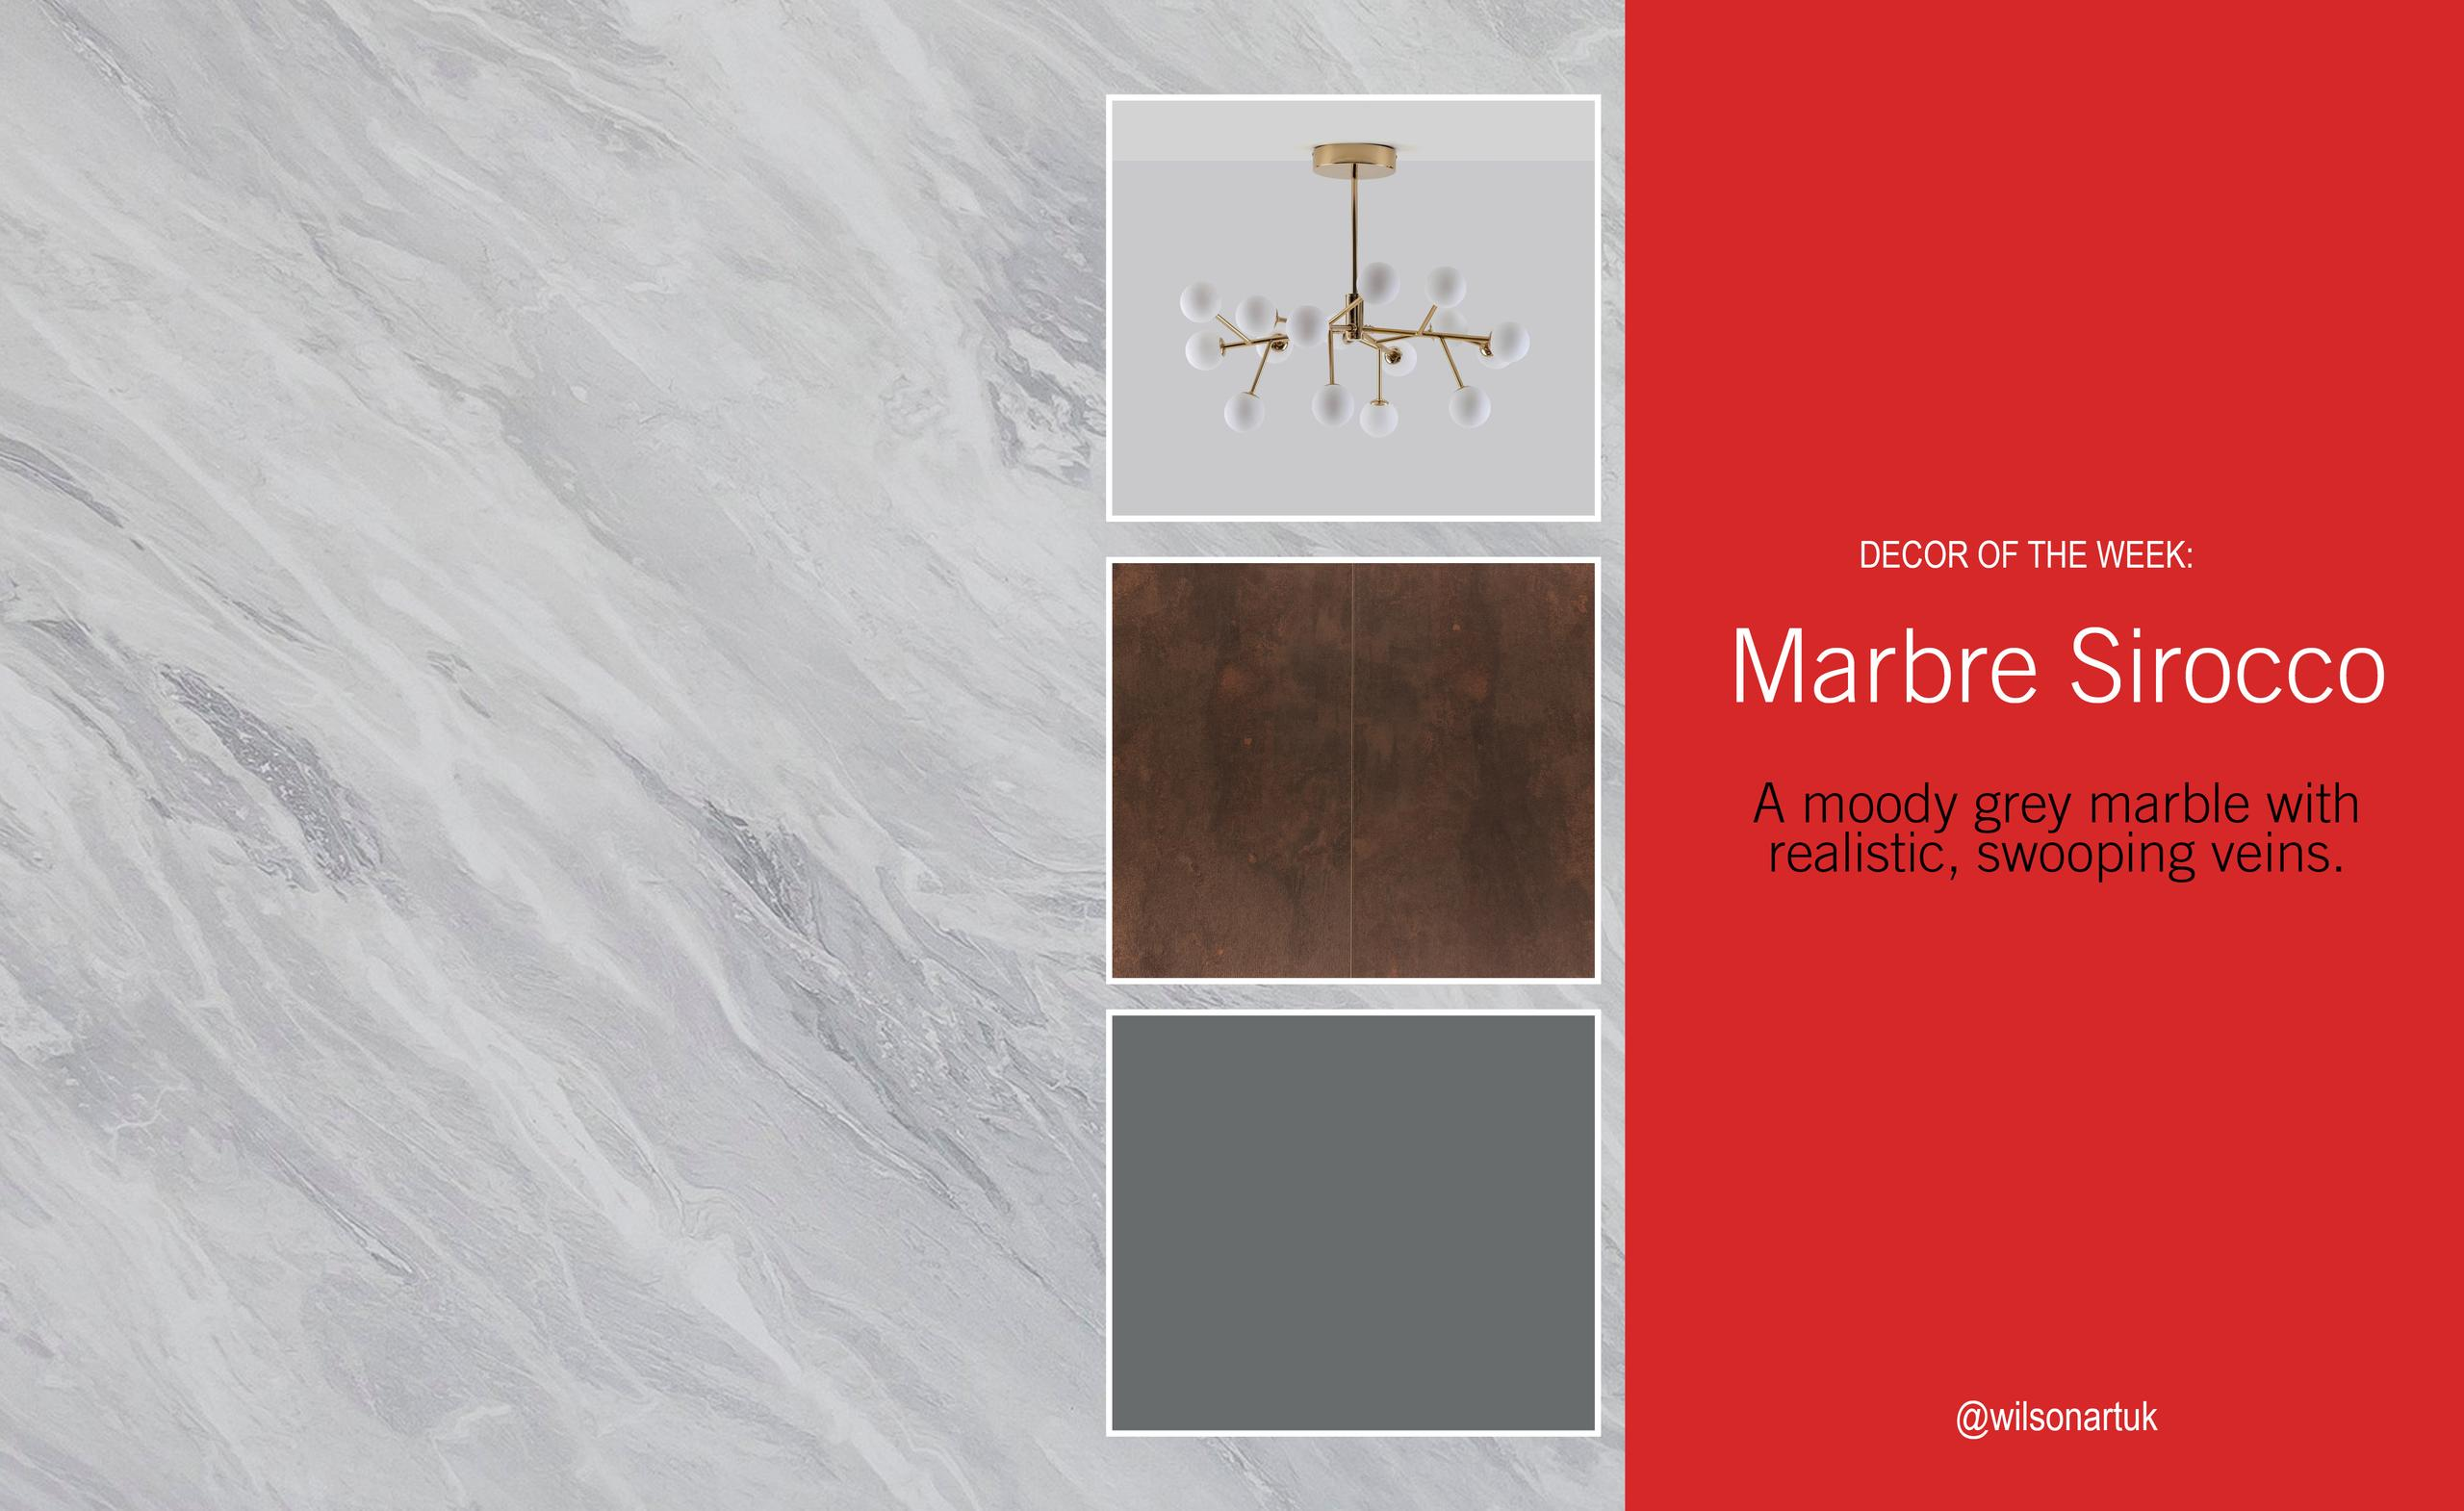 Decor of the Week: Marbre Sirocco